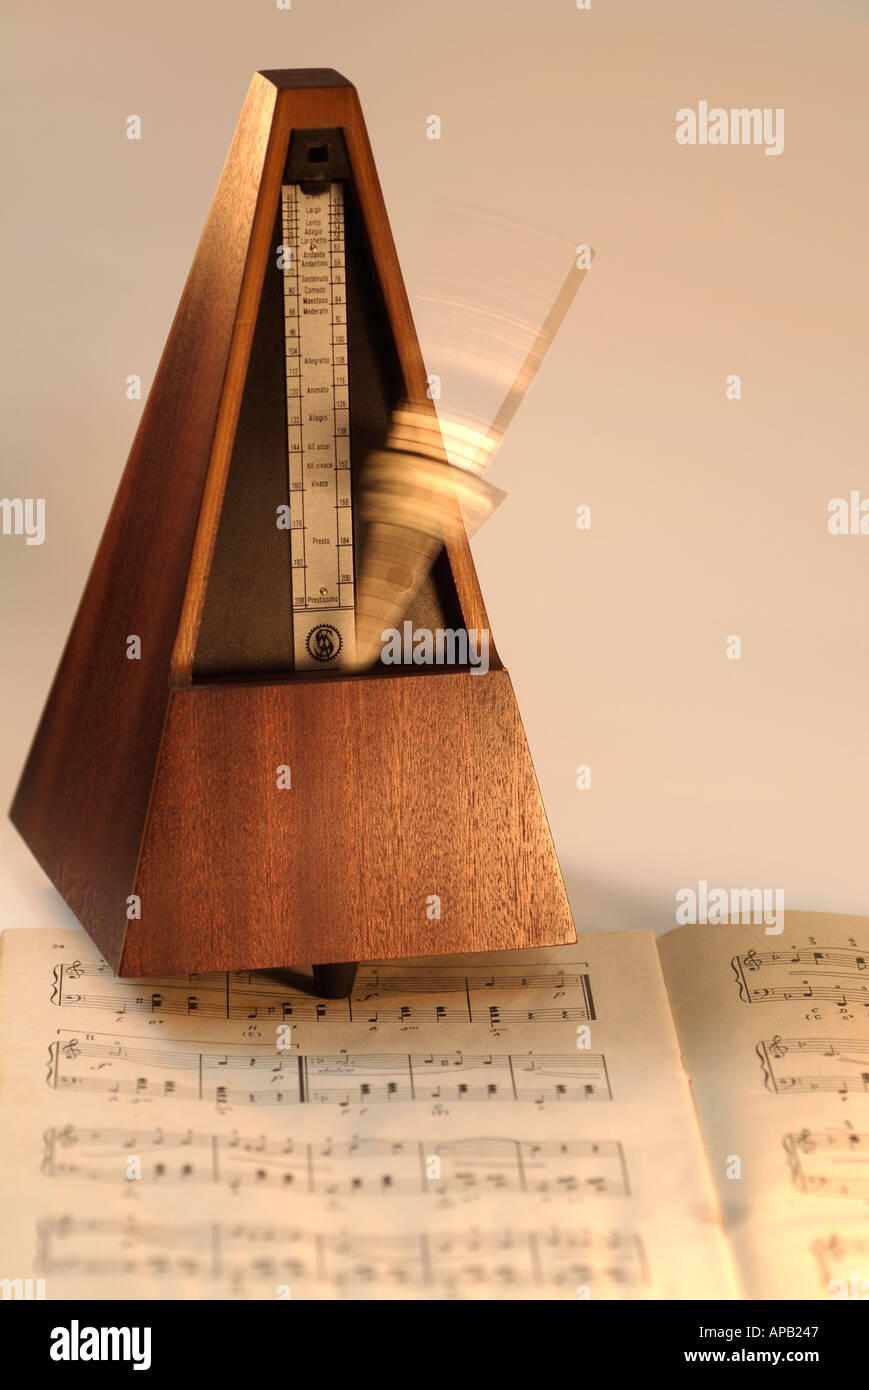 Metronome on a Music Book - Stock Image